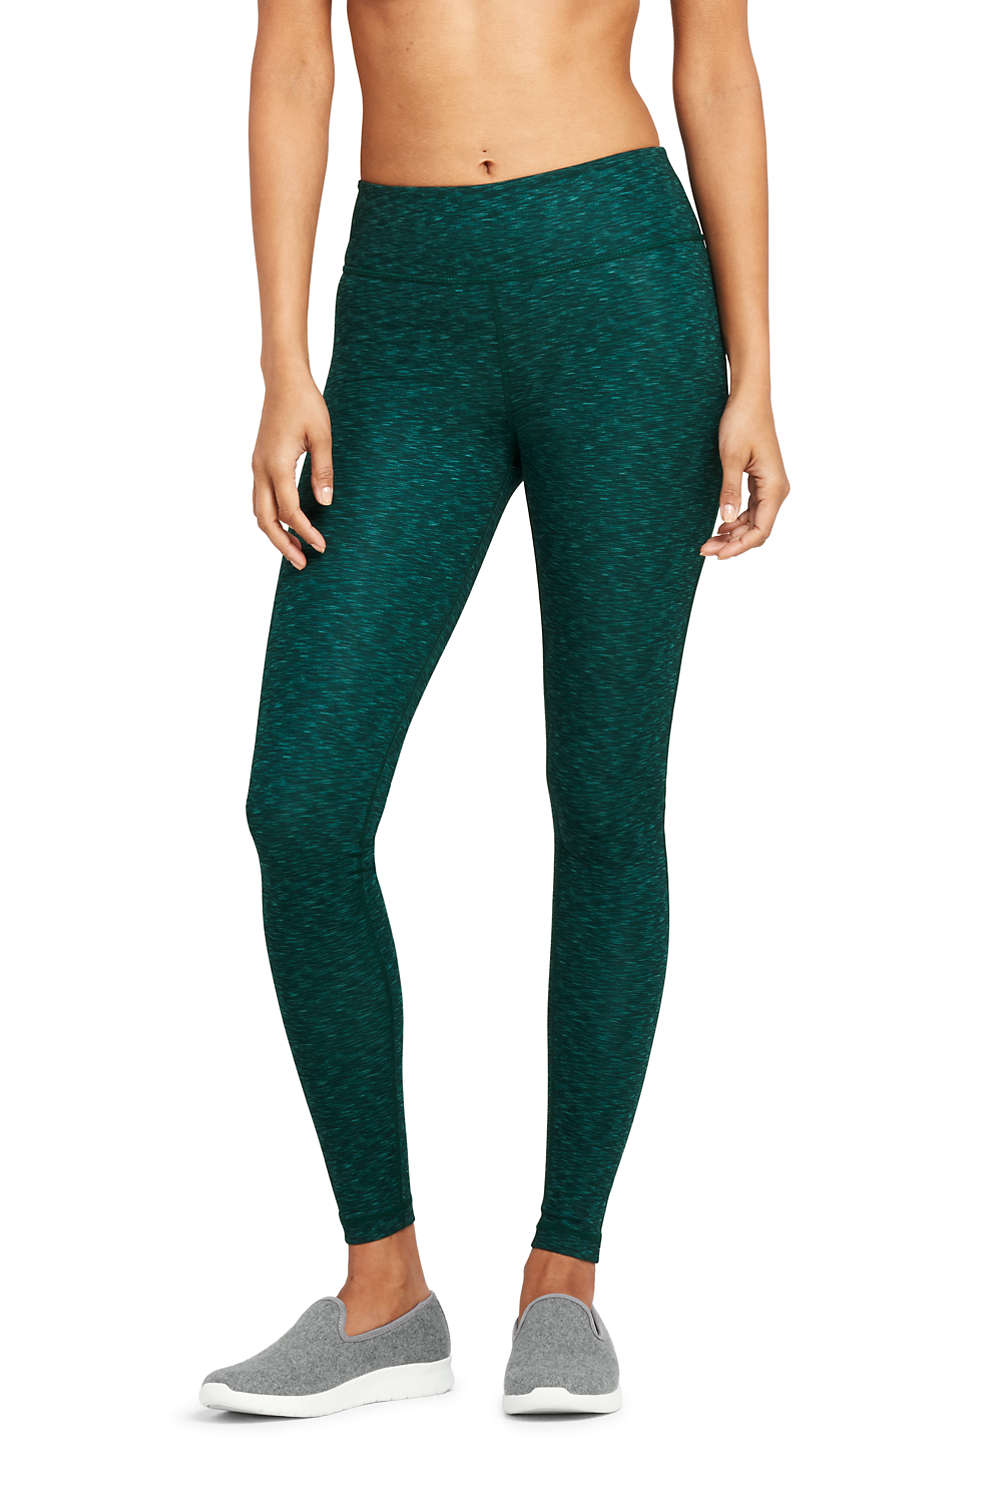 41ff8d97e900 Women s Active High Waisted Yoga Leggings from Lands  End